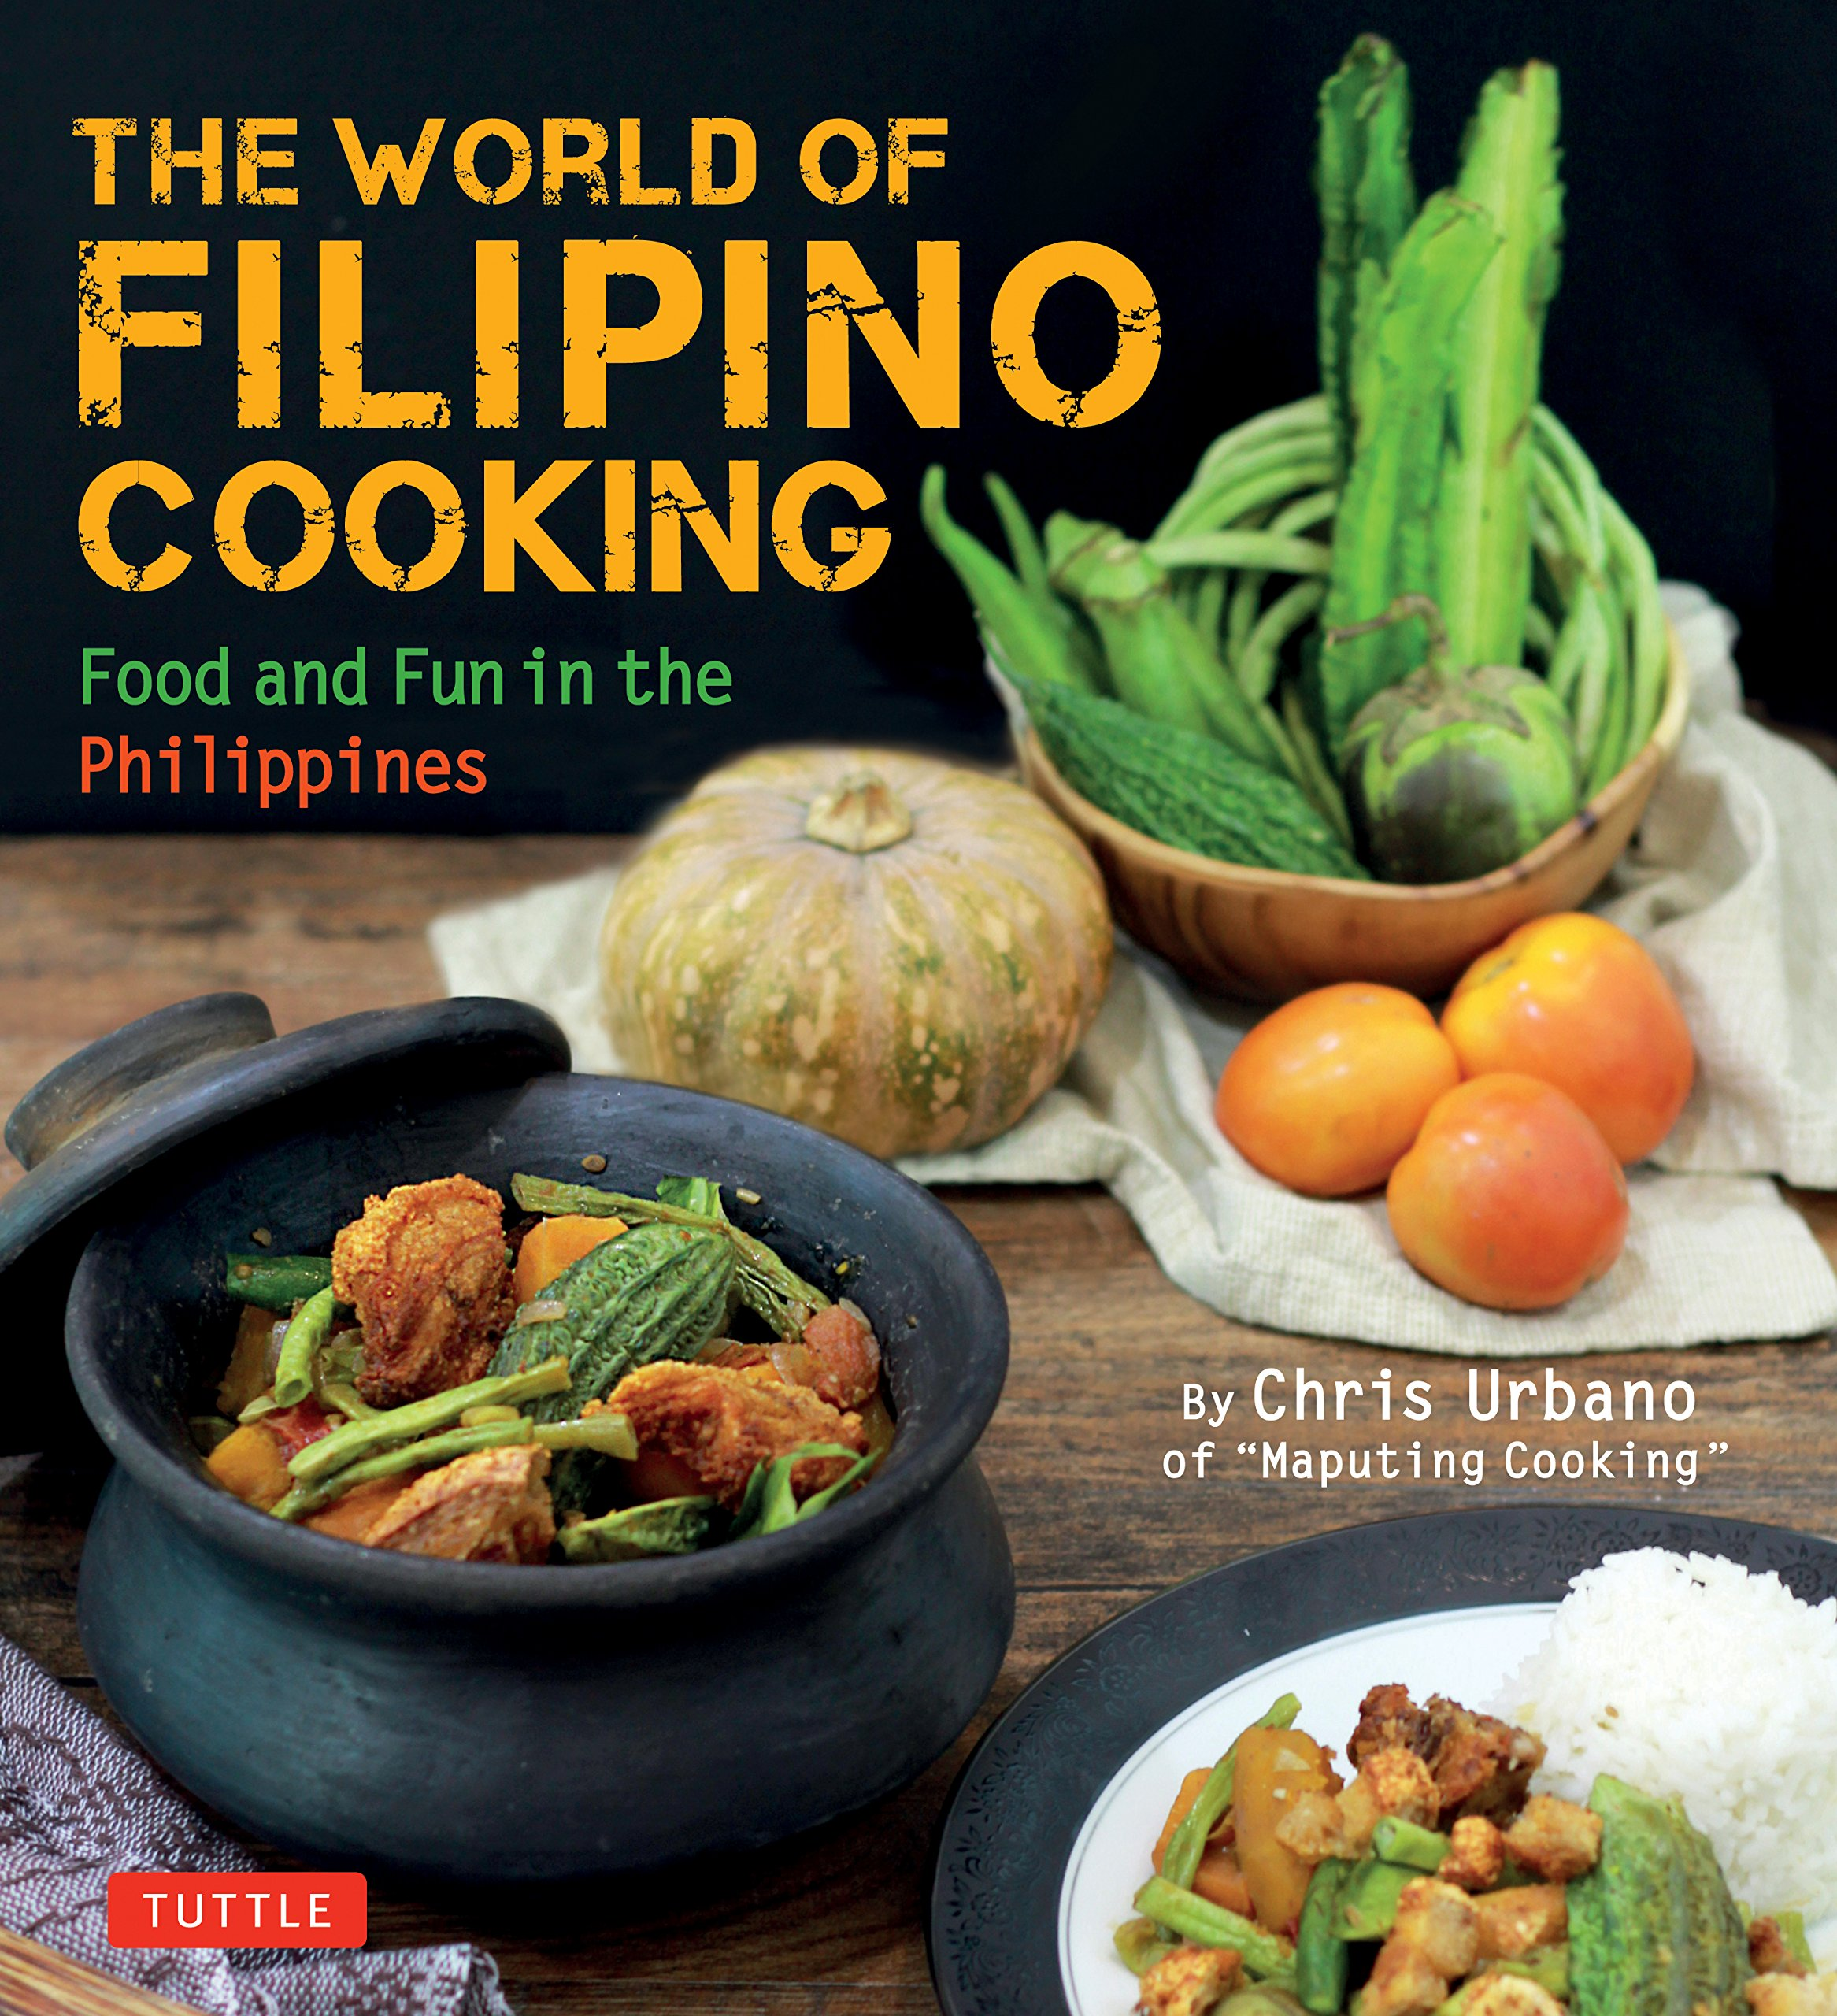 The world of filipino cooking food and fun in the philippines by the world of filipino cooking food and fun in the philippines by chris urbano of maputing cooking over 90 recipes chris urbano 9780804849258 forumfinder Choice Image